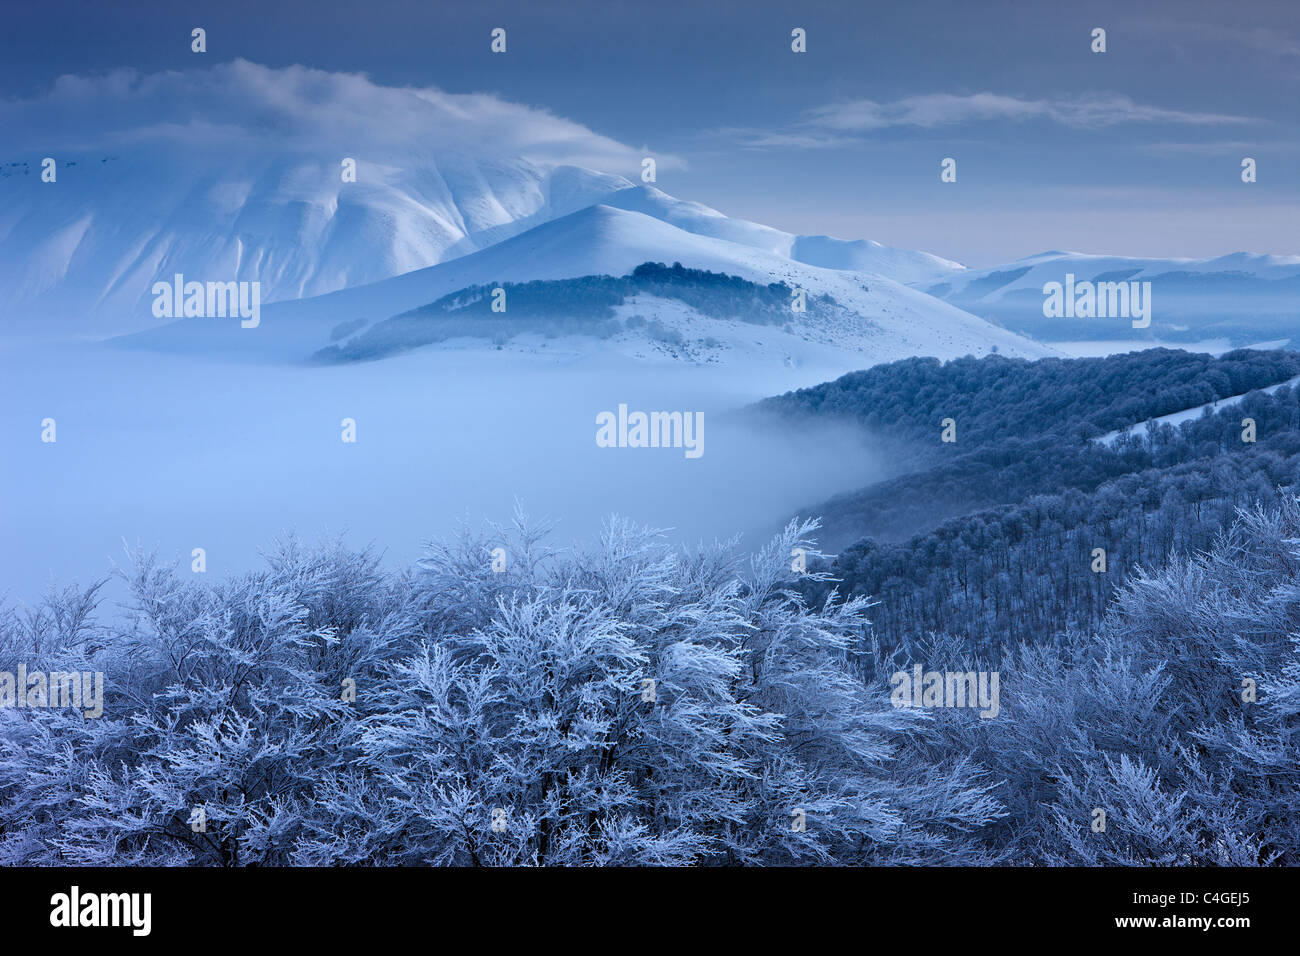 snow and ice on the Piano Grande in winter with Monte Vettore beyond, Monti Sibillini National Park, Umbria, Italy - Stock Image